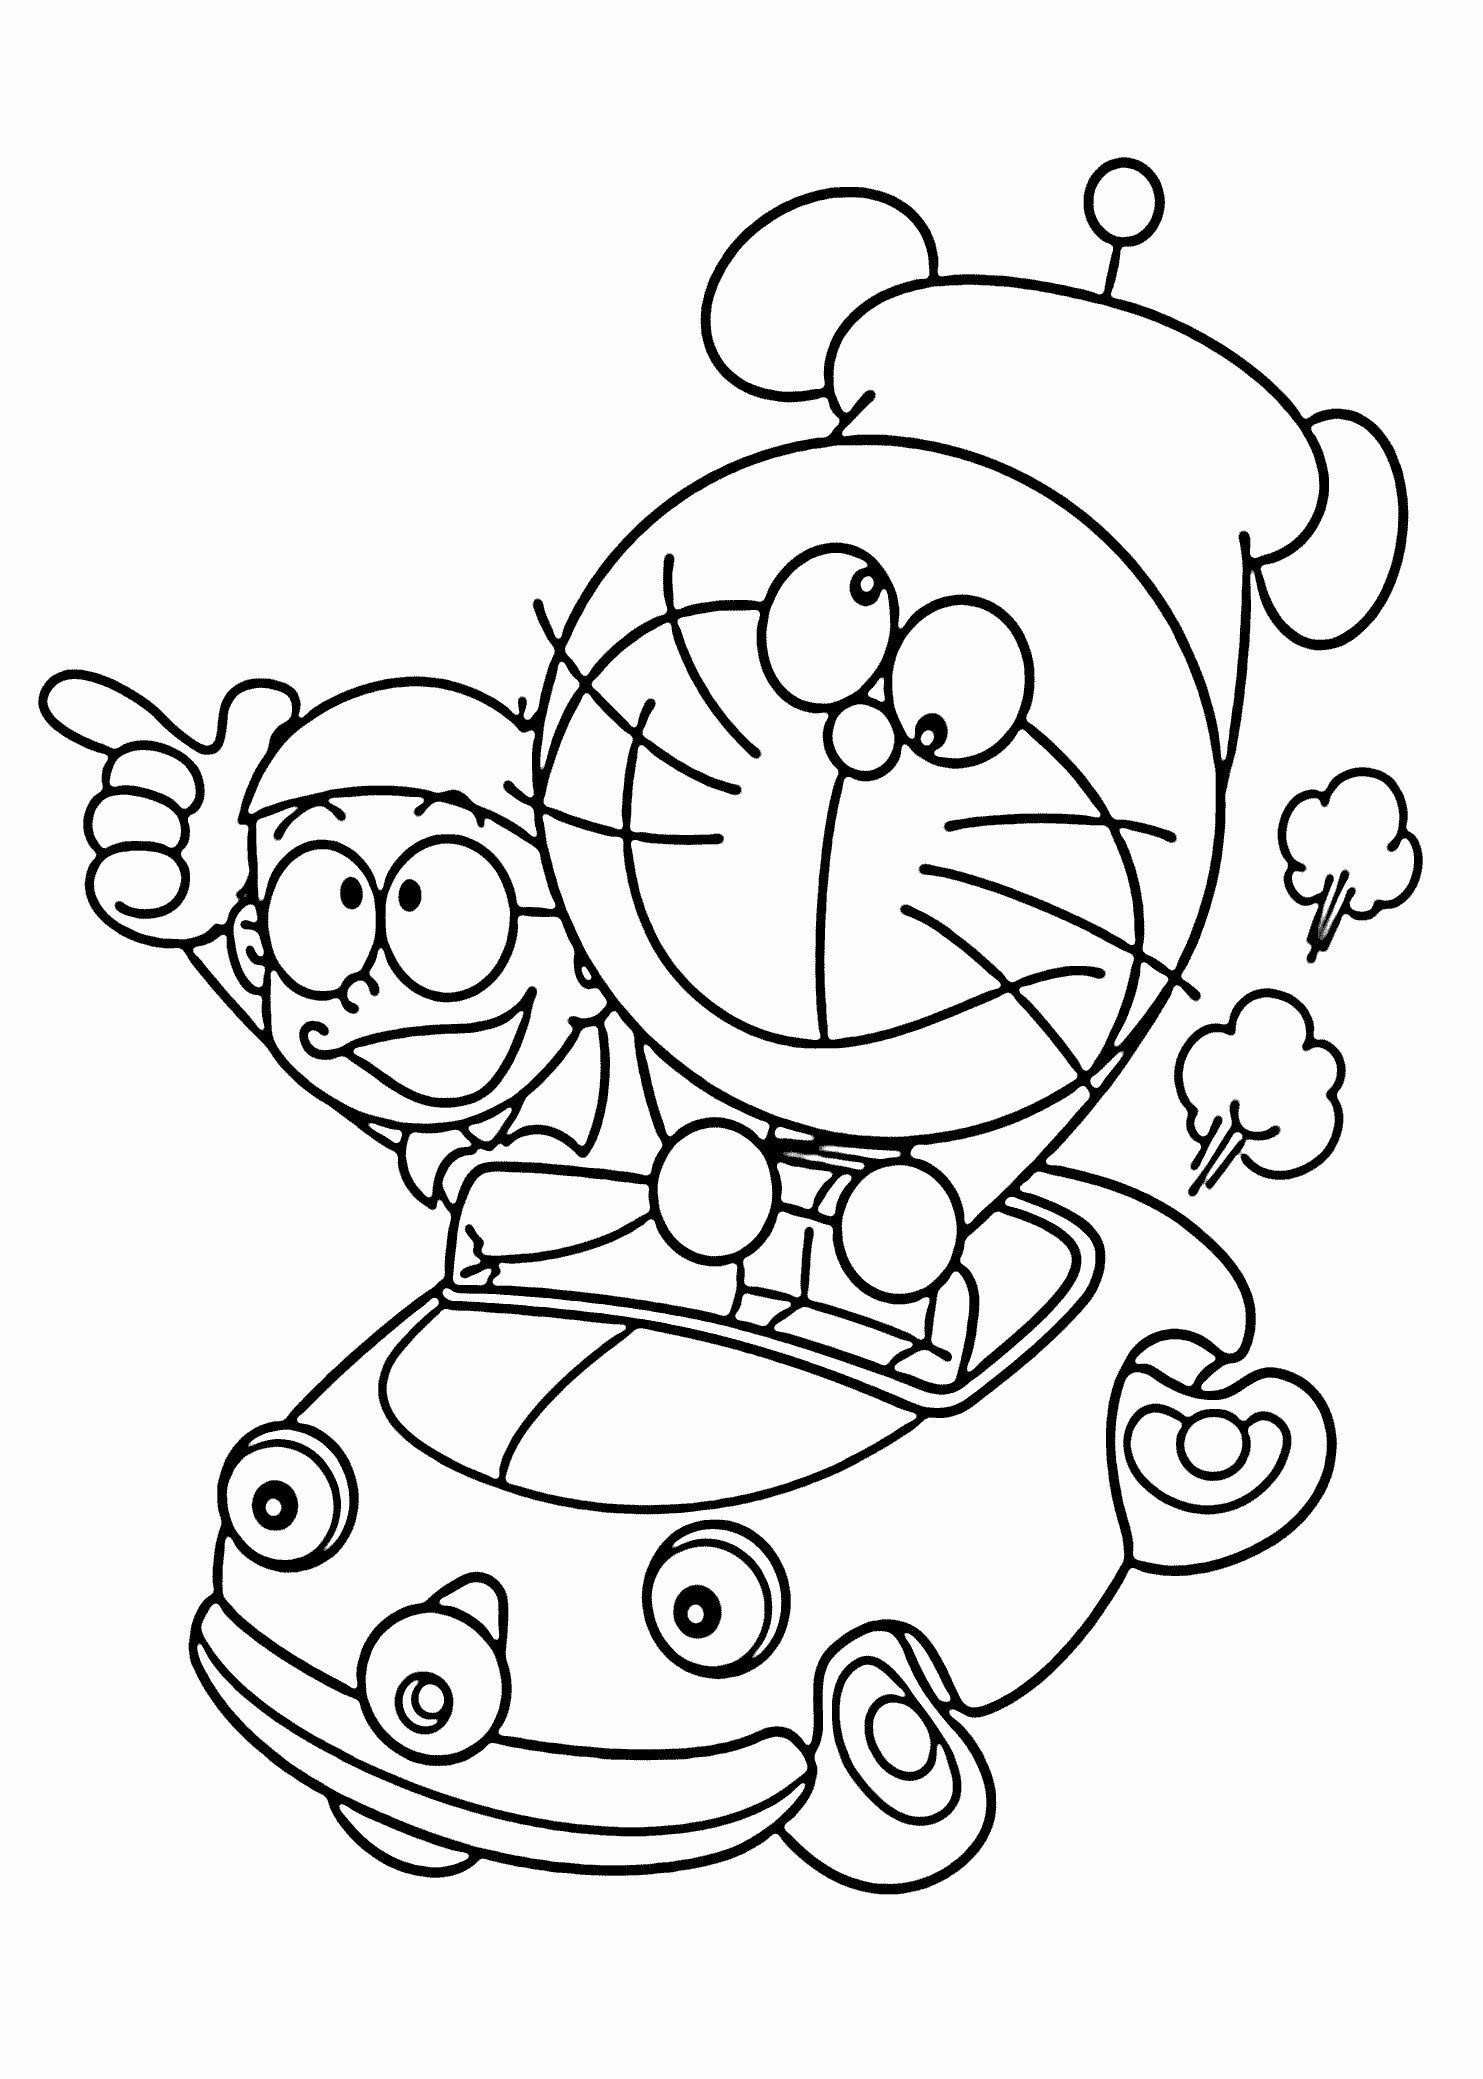 Animal Coloring Pages Momjunction Luxury Coloring Book World Turkey Coloringages Forreschool Cool Coloring Pages Valentine Coloring Pages Turkey Coloring Pages